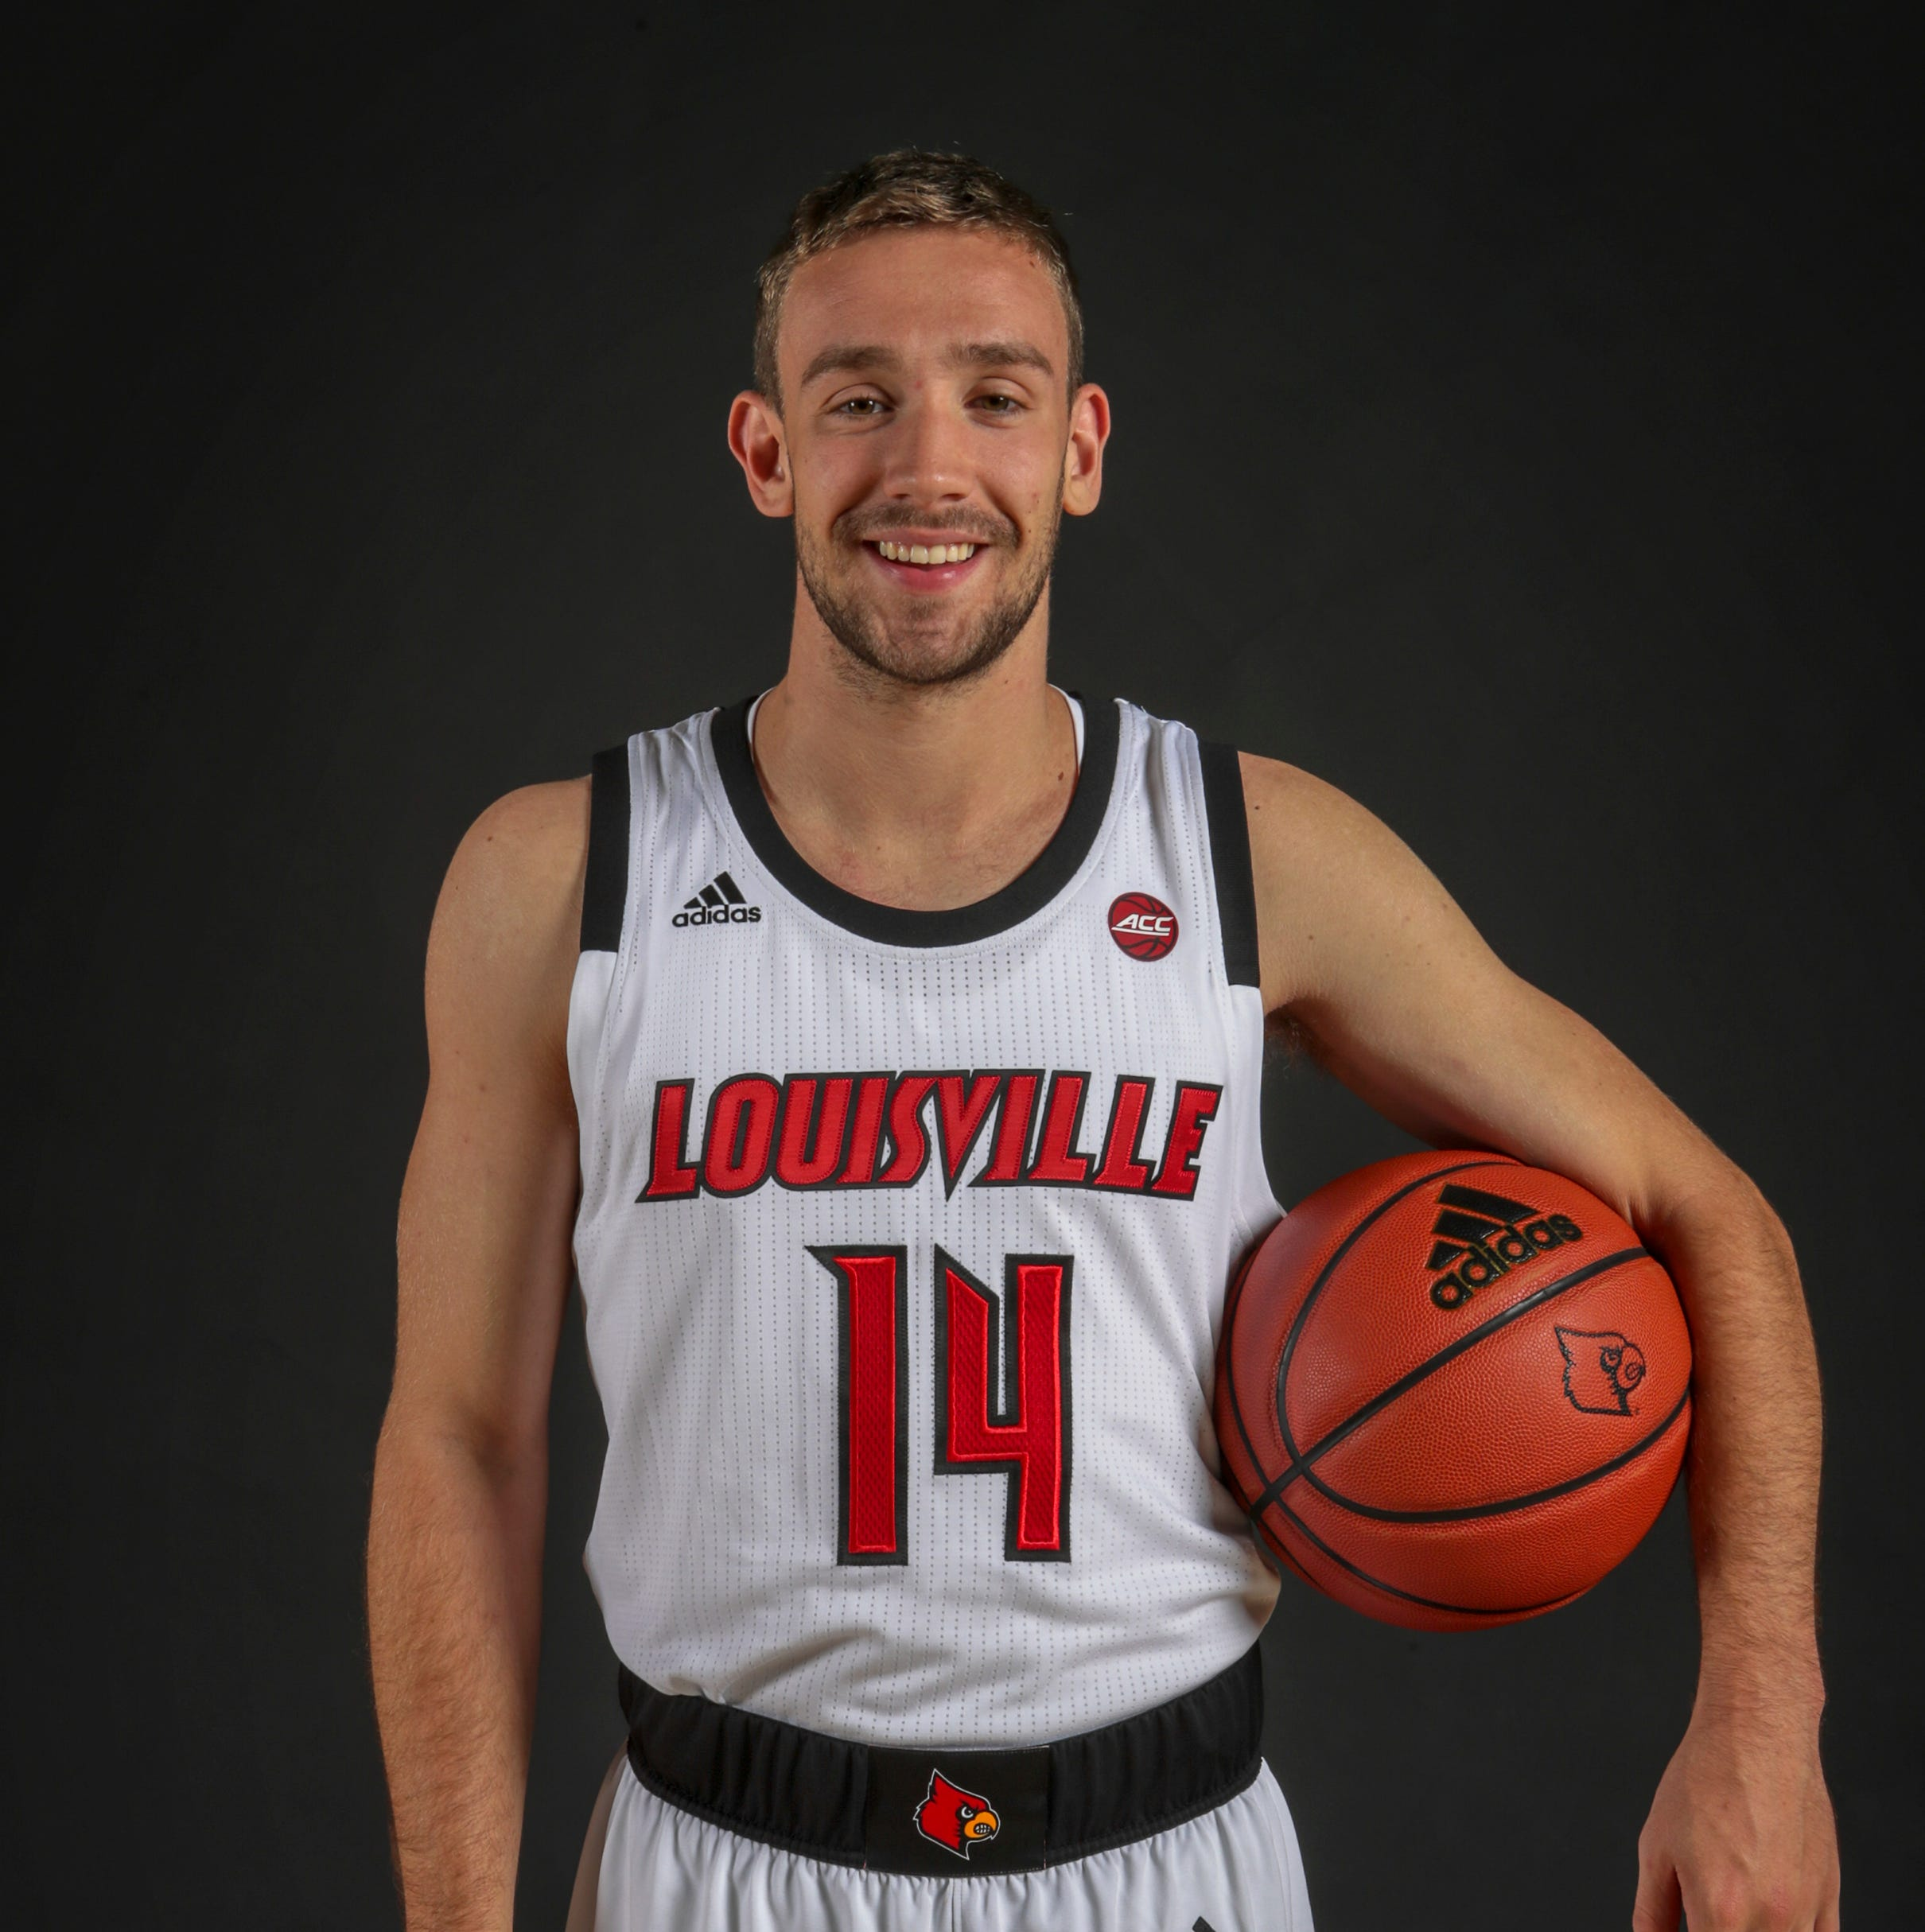 Louisville basketball's 'pep guy' joins team 30 days after tryout